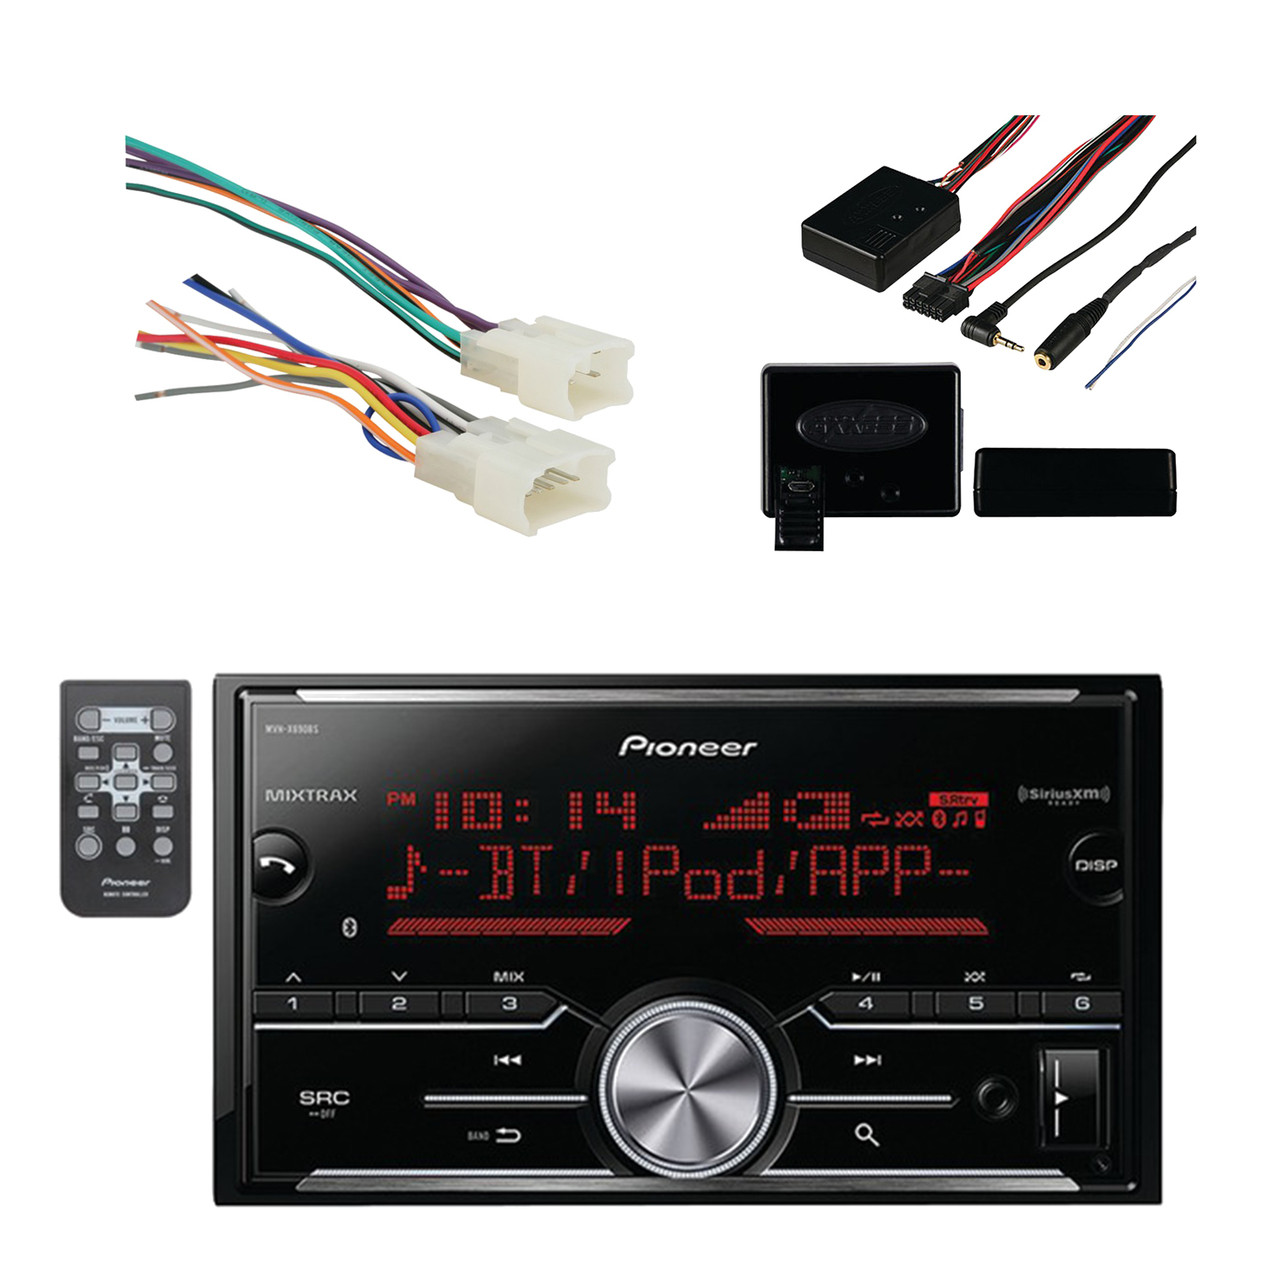 medium resolution of pioneer vehicle digital media double din receiver with bluetooth black with metra radio wiring harness for toyota 87 up power 4 speaker and metra axxess